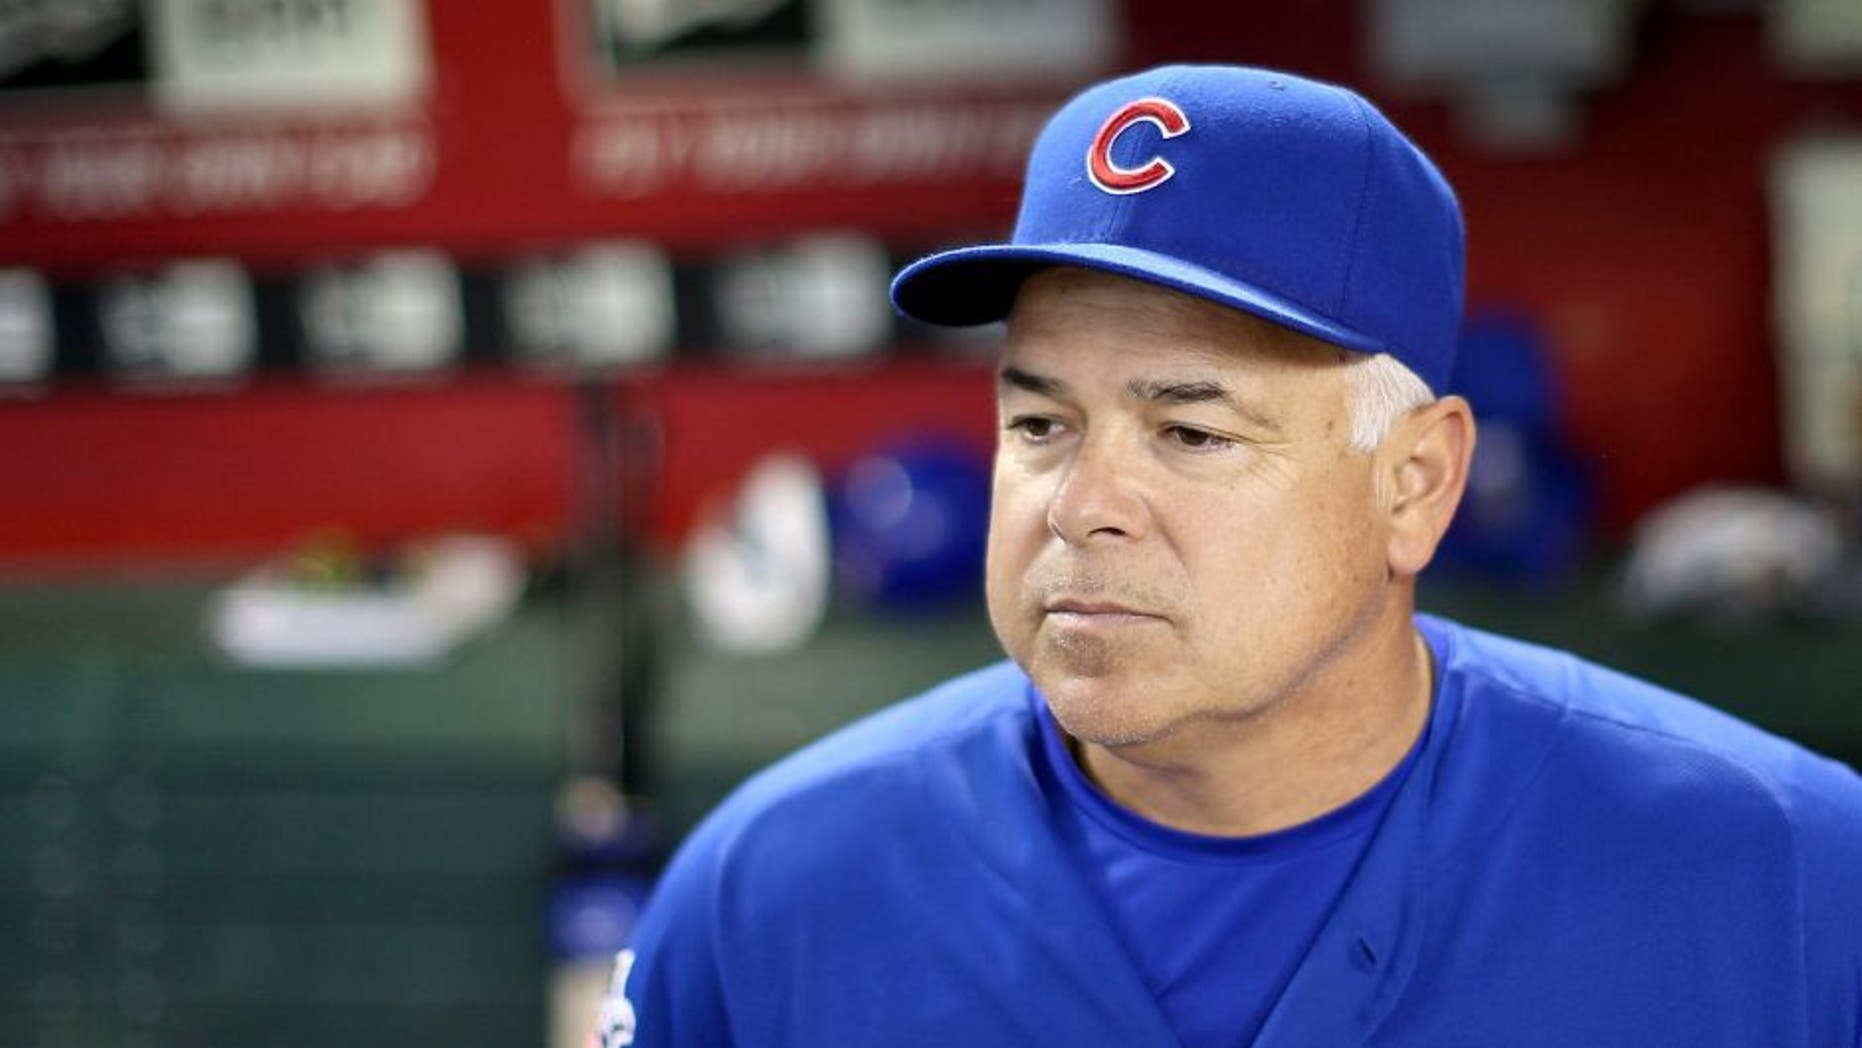 PHOENIX, AZ - JULY 18: Manager Rick Renteria #16 of the Chicago Cubs watches from the dugout during the MLB game against the Arizona Diamondbacks at Chase Field on July 18, 2014 in Phoenix, Arizona. (Photo by Christian Petersen/Getty Images) *** Local Caption *** Rick Renteria